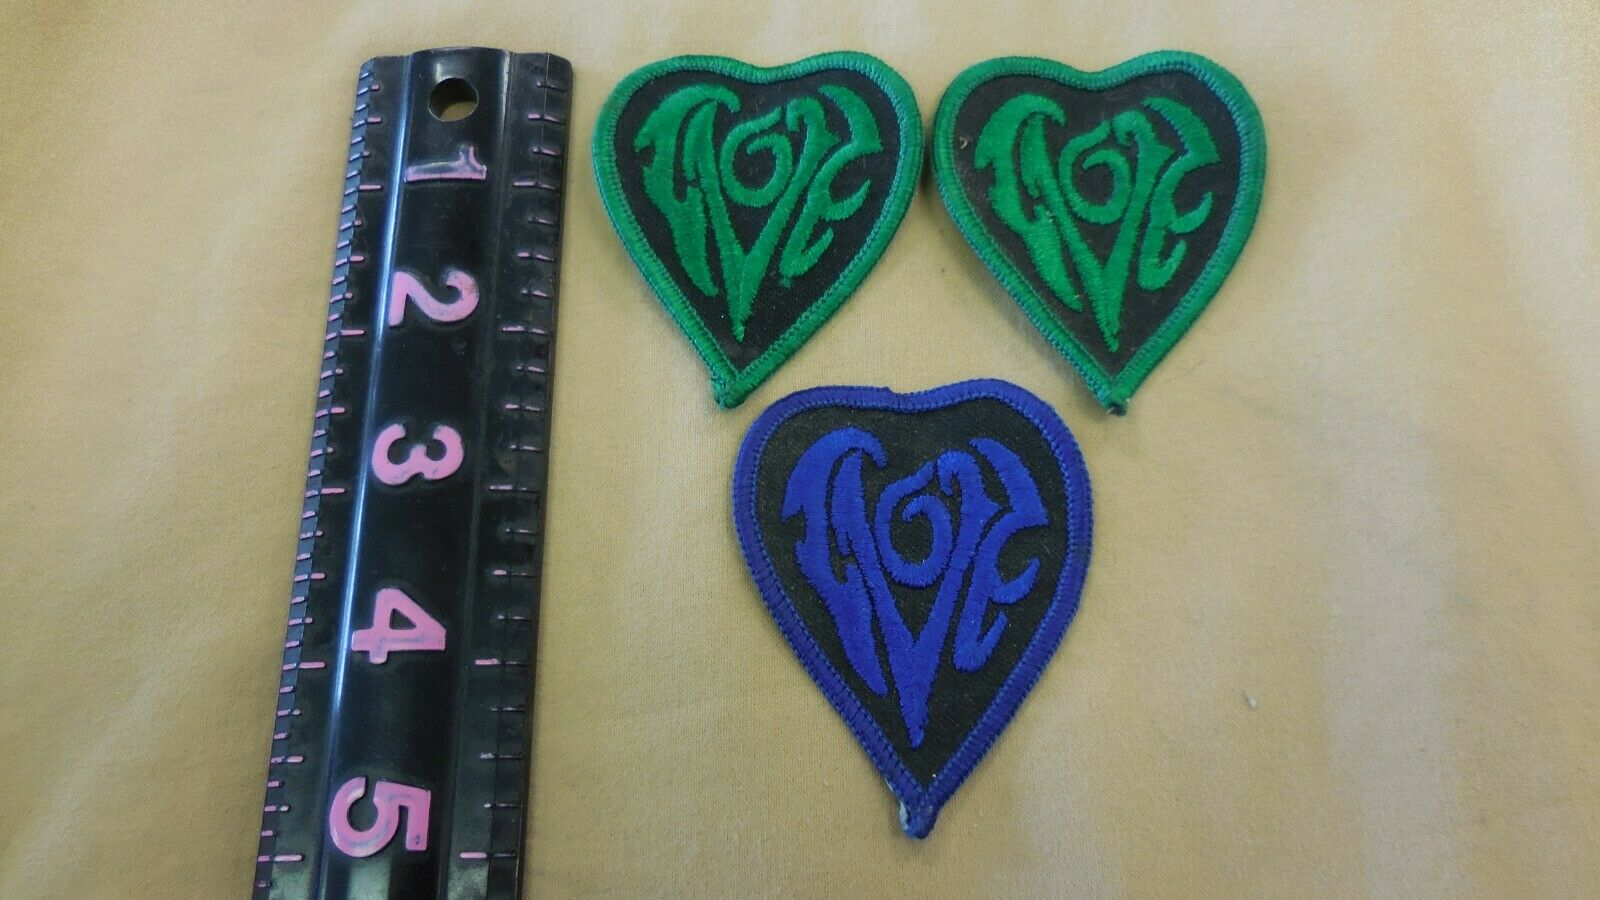 3 VINTAGE 1970's LOVE heart shaped patches